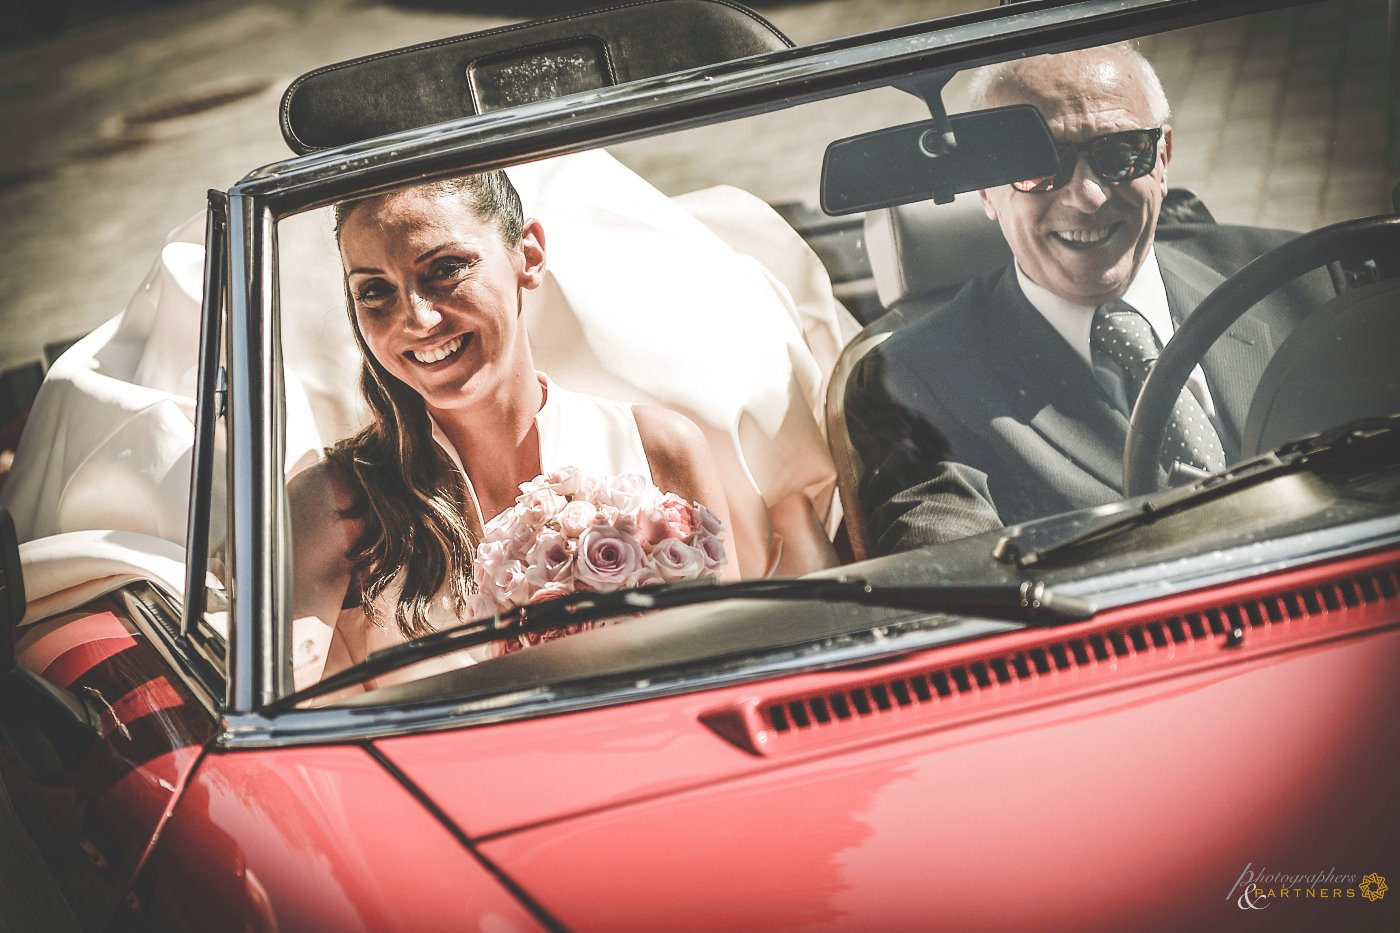 photography_weddings_bucciano_04.jpg